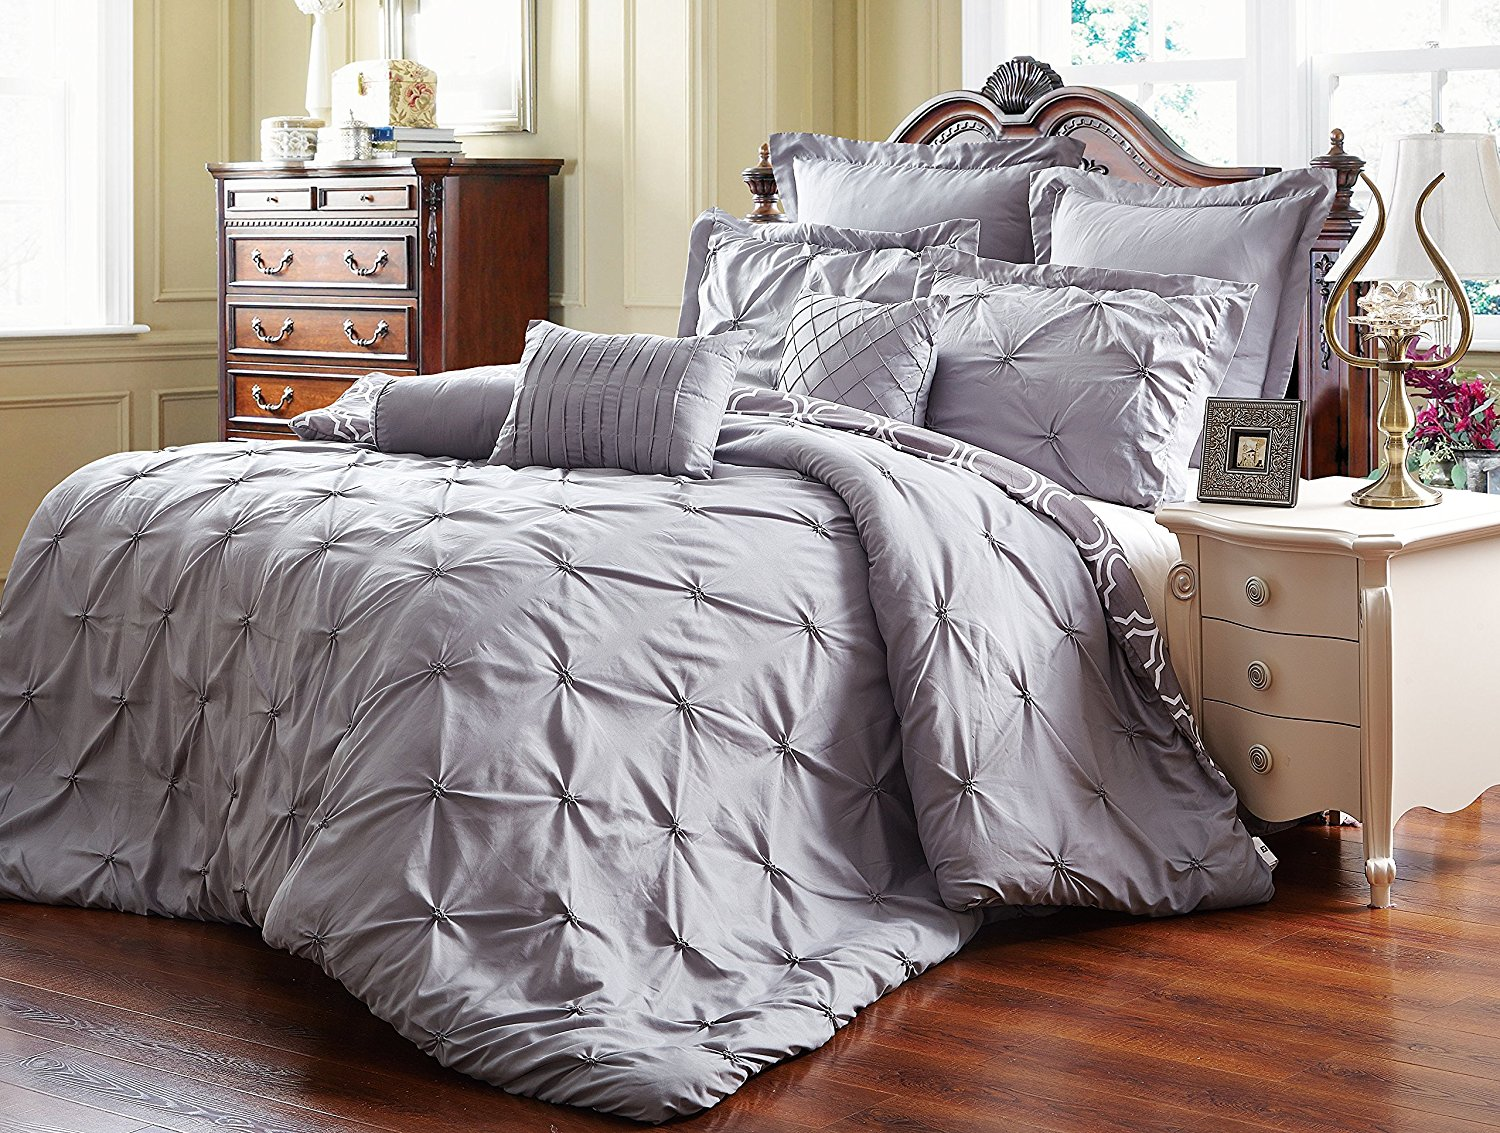 microsuede stiped bedding ideas corner striped pattern bed shams california quilt comfy cal color old blue about zq material with skirt king on noble